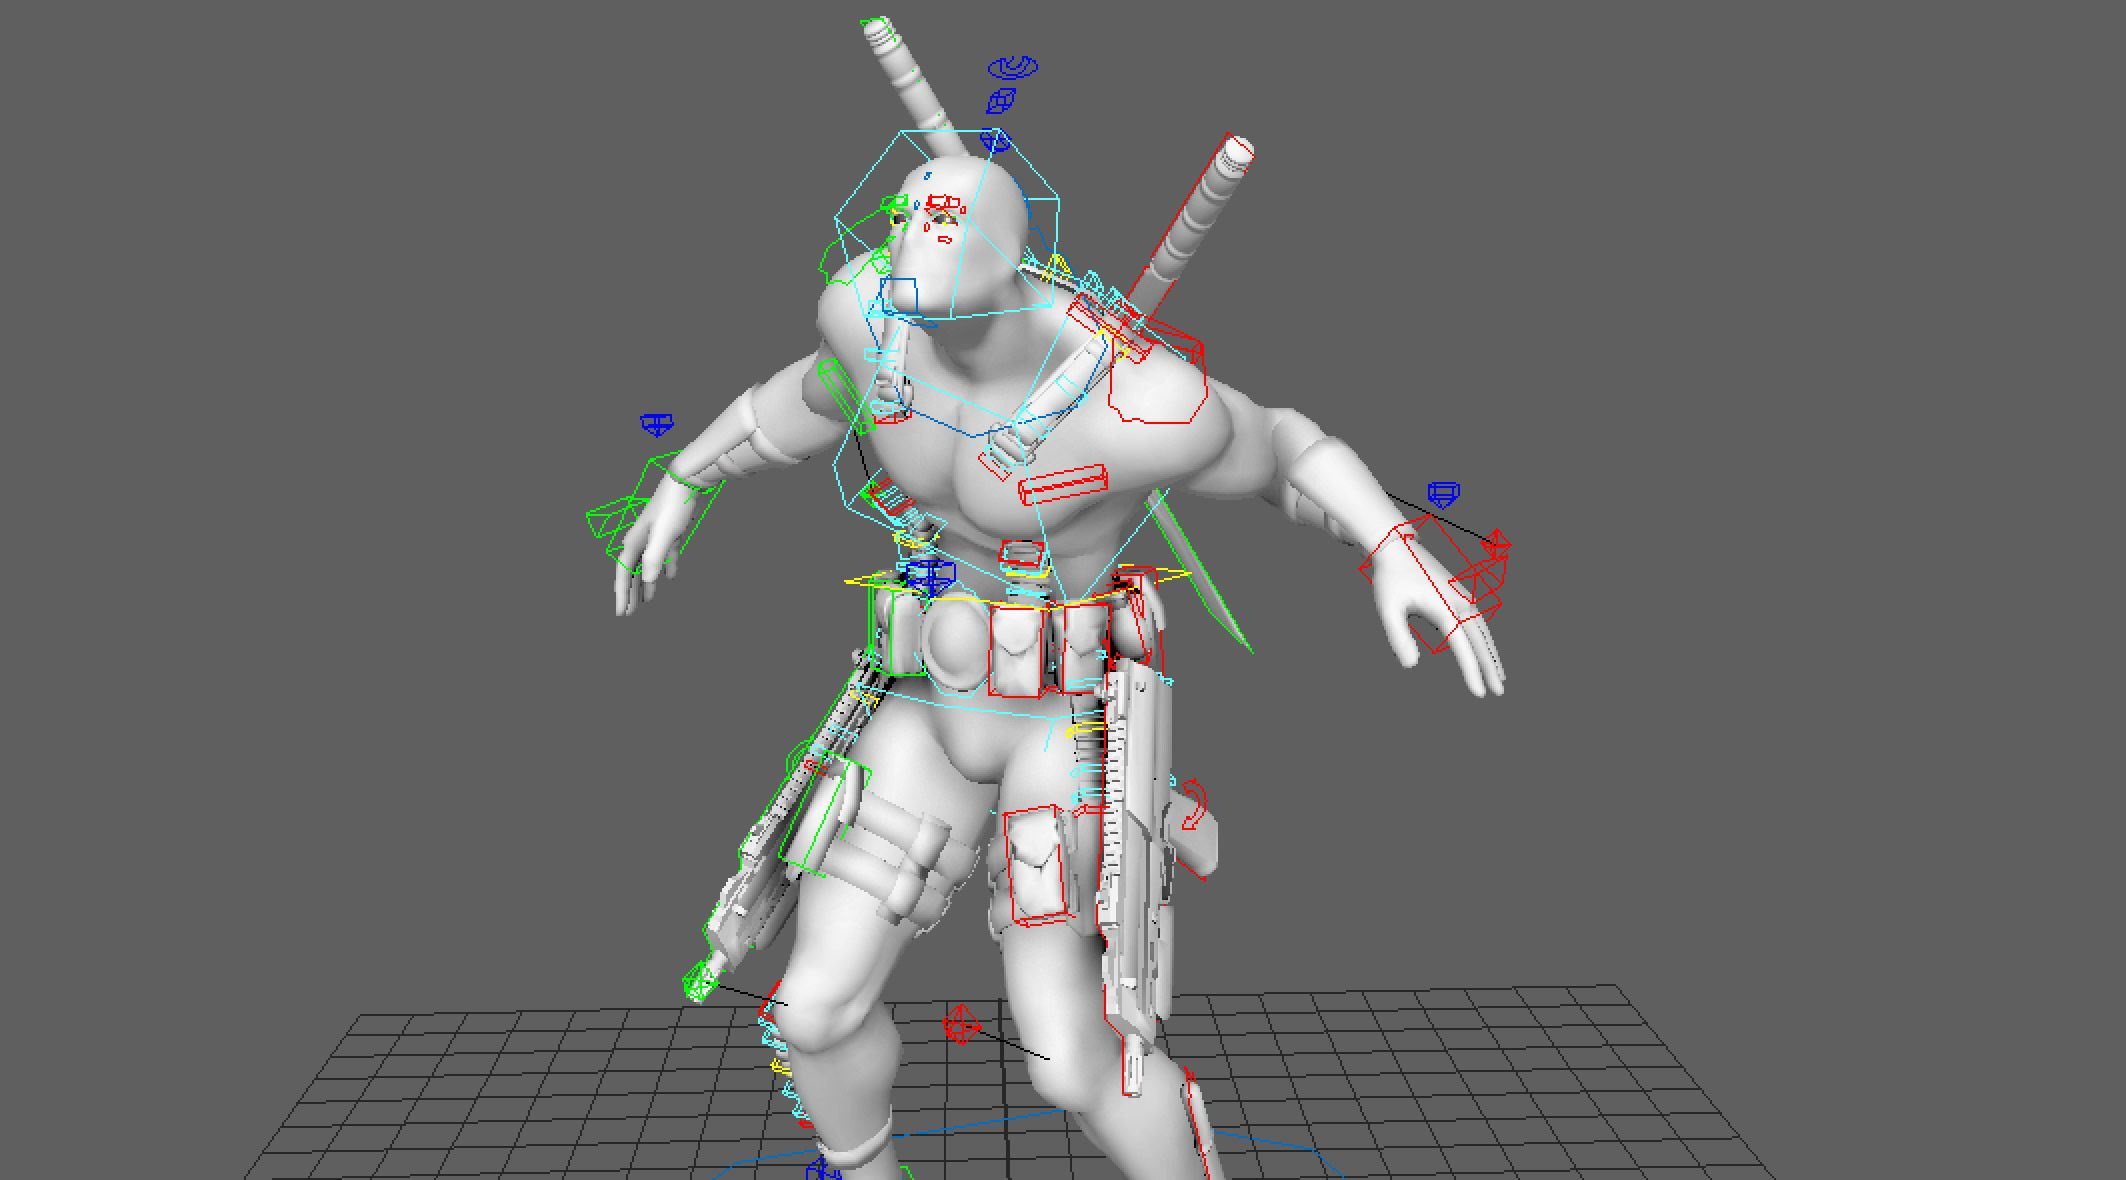 Download Free Rigged 3d Model | Character rigging, Model, 3d